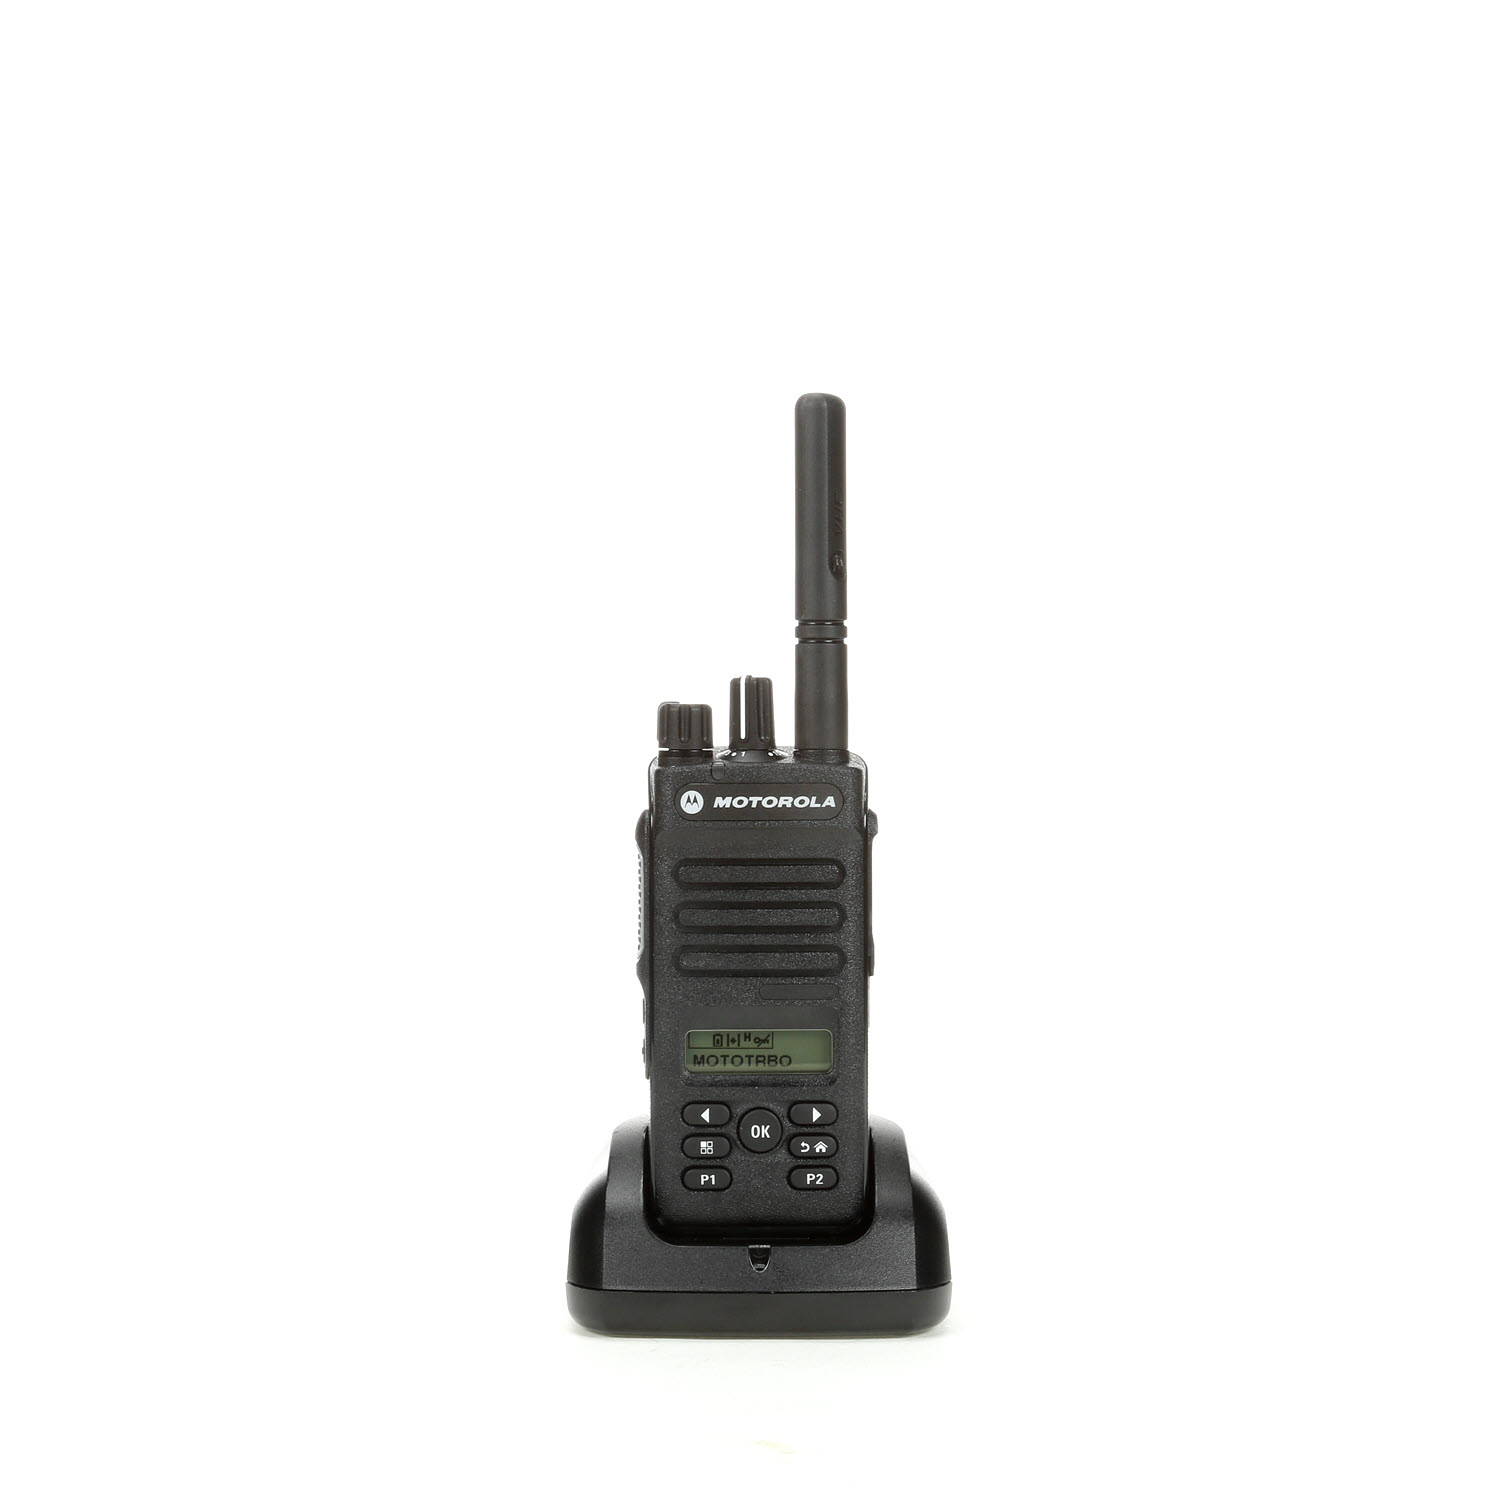 Xir P6600i Series Motorola Solutions Asia Pacific Handy Talky Cp1300